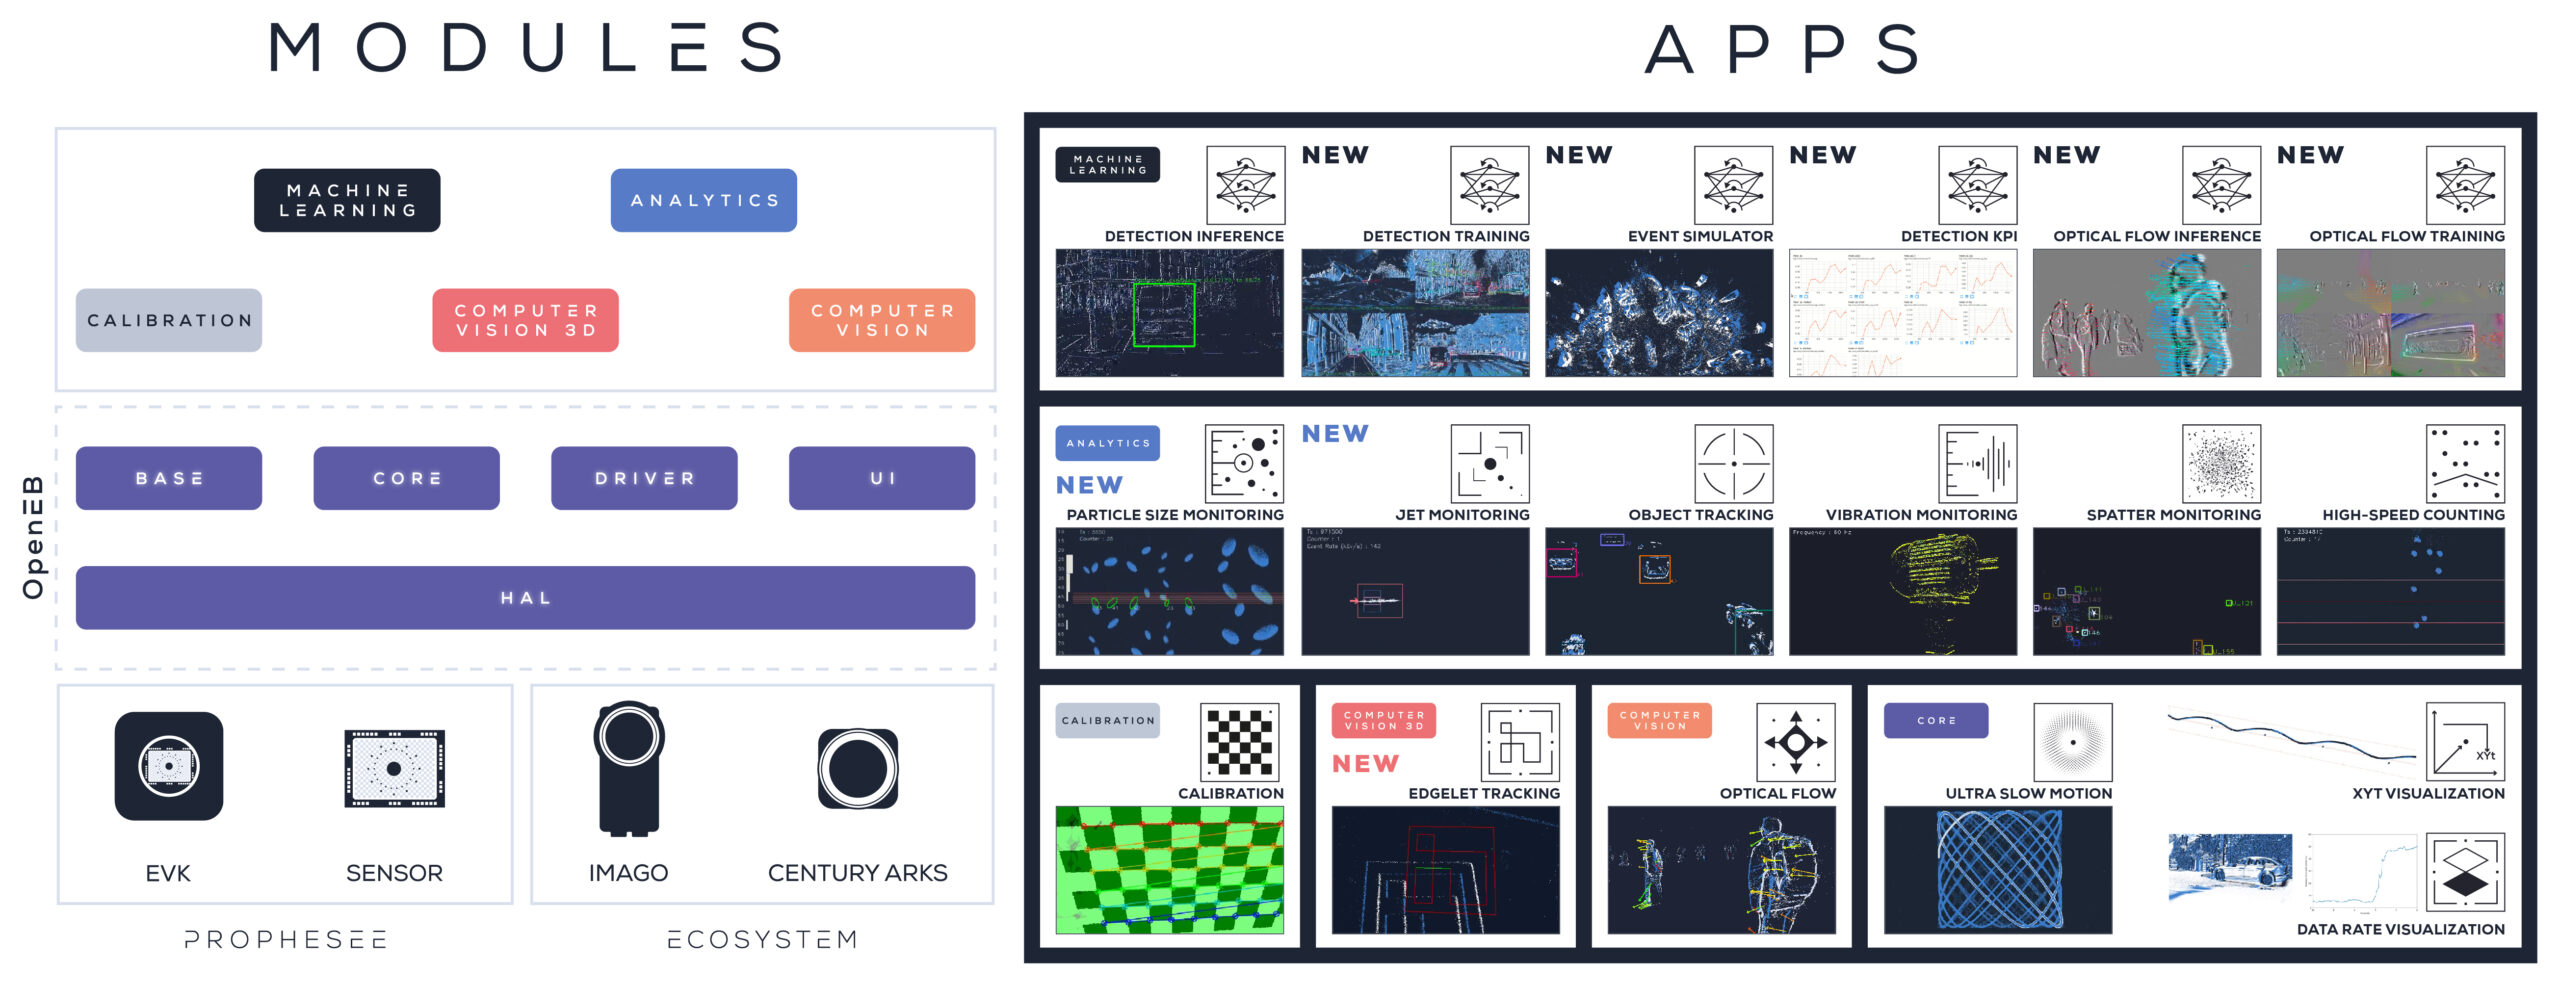 Prophesee releases OpenEB, the industry's largest open-source Event-Based Vision software library, and new development tools for Event-Based Machine Learning